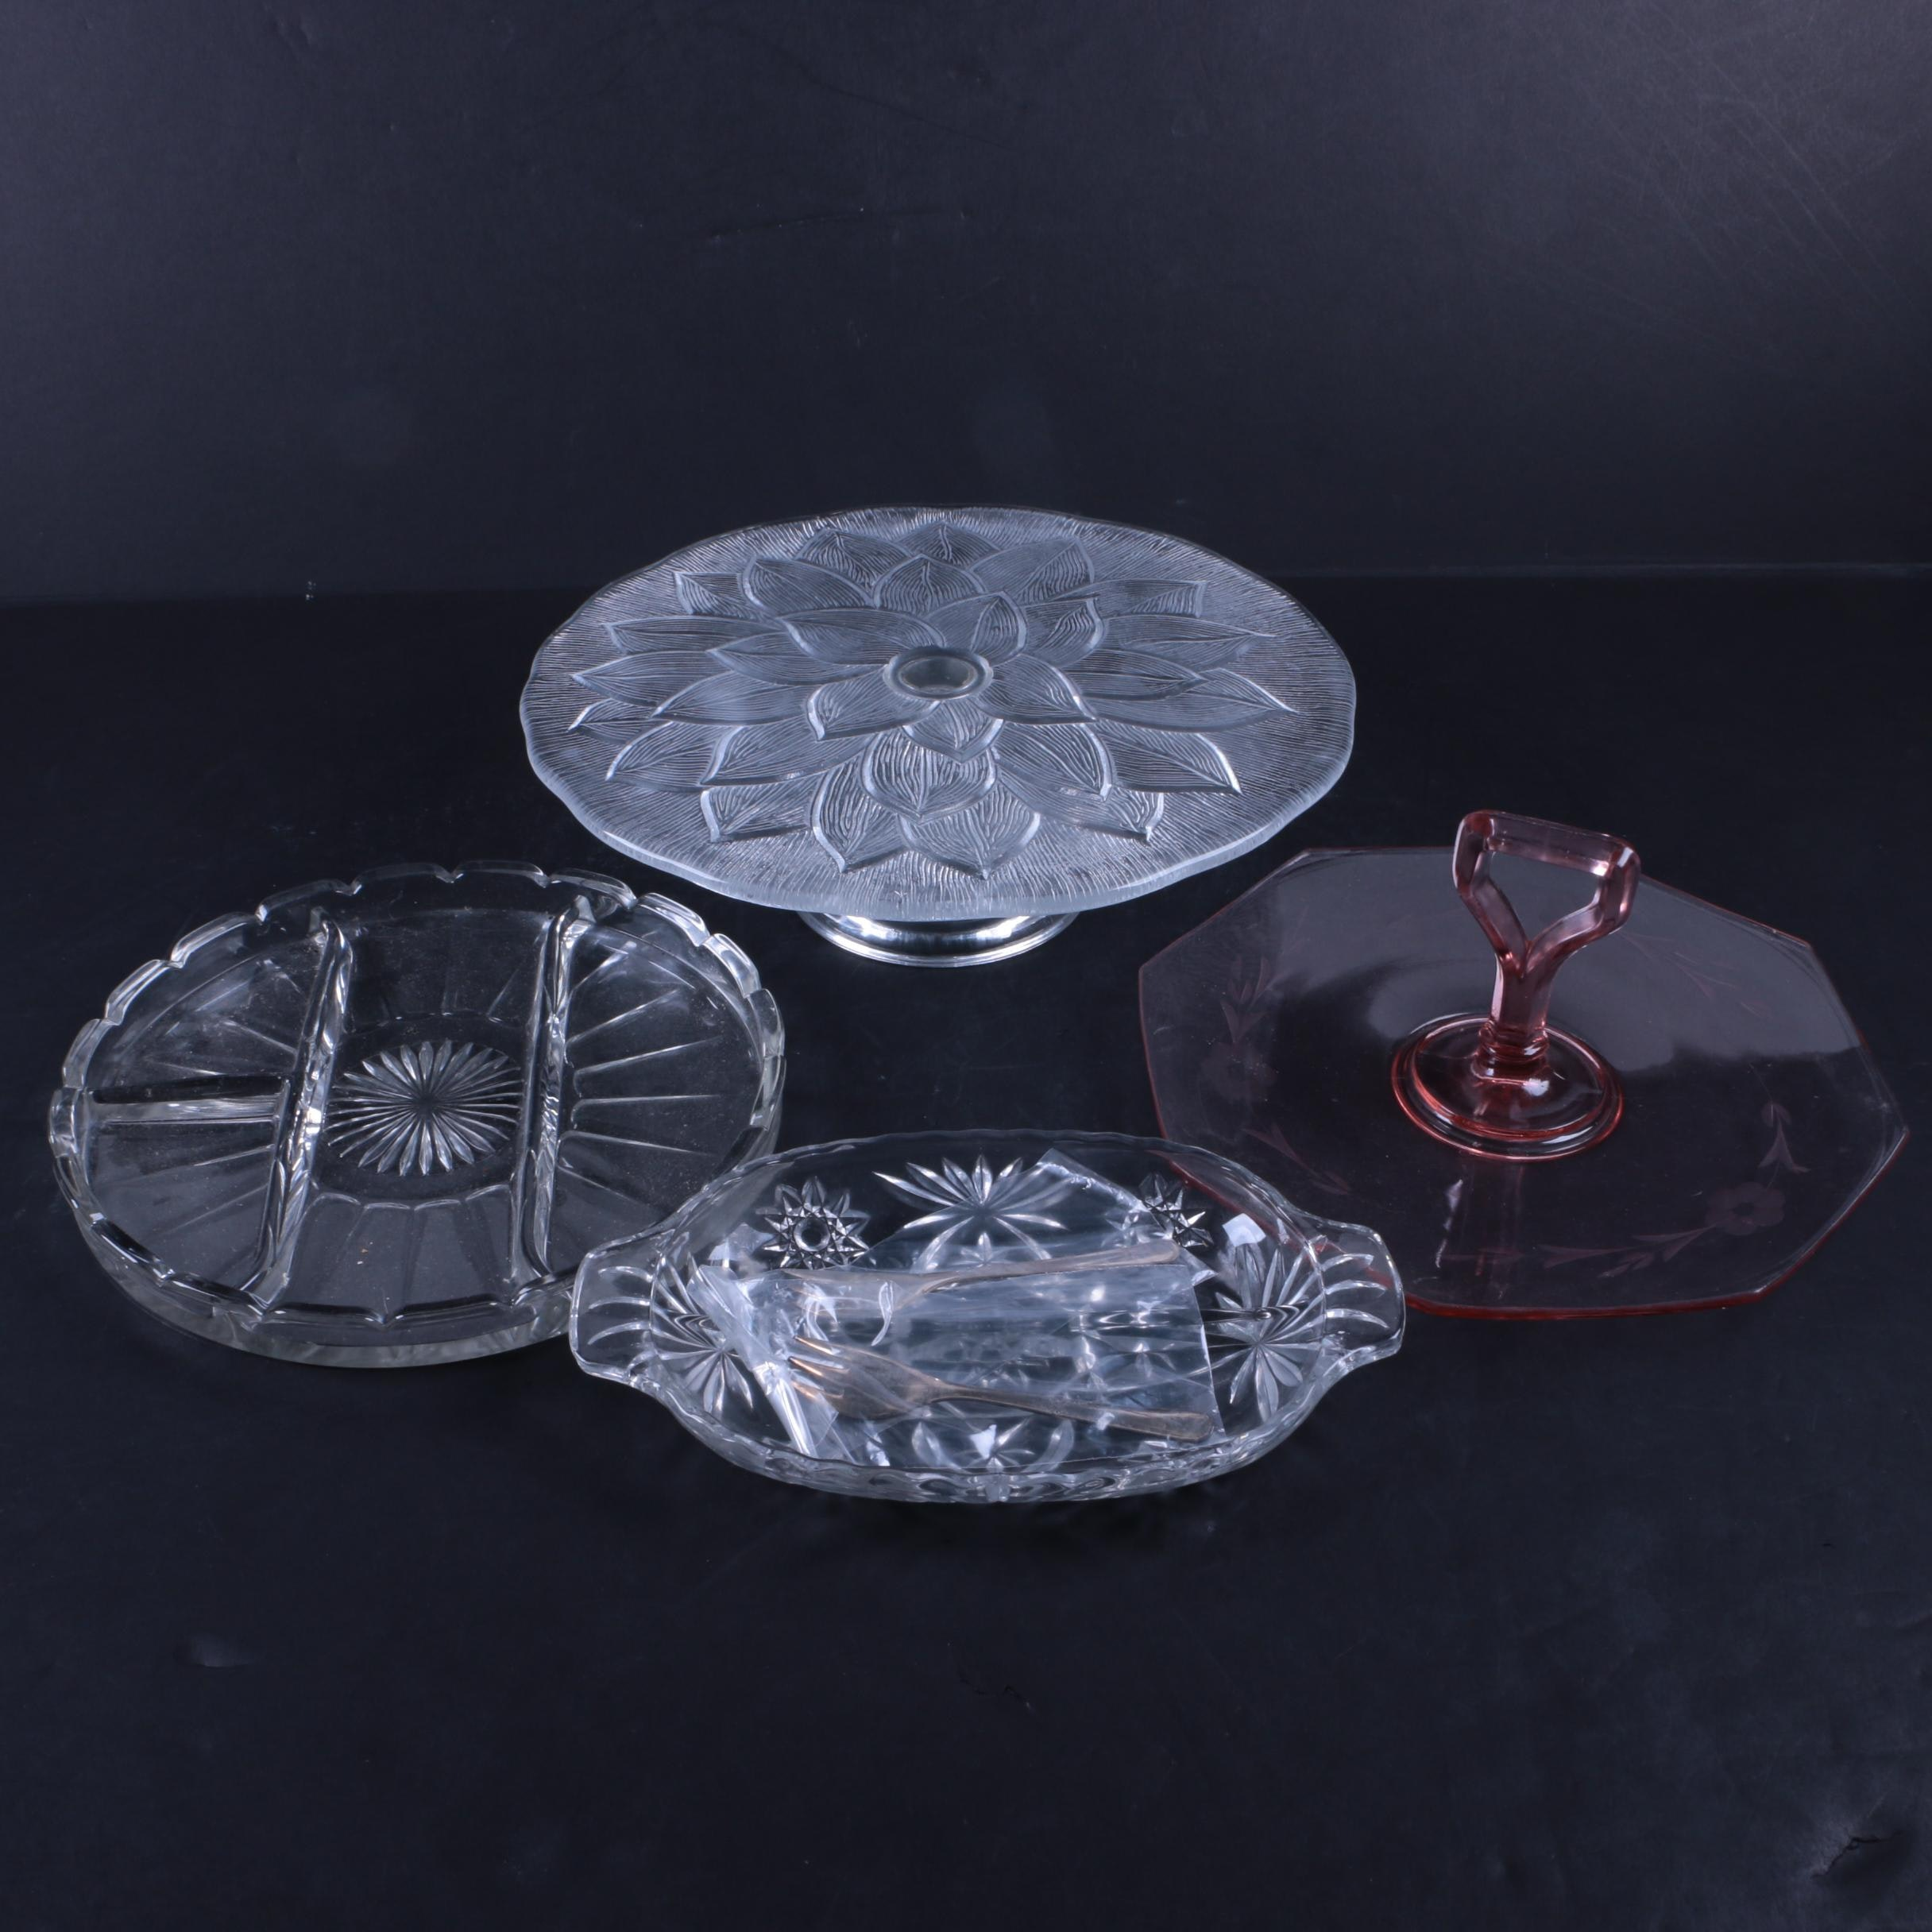 Vintage Crystal and Glass Serving Platters